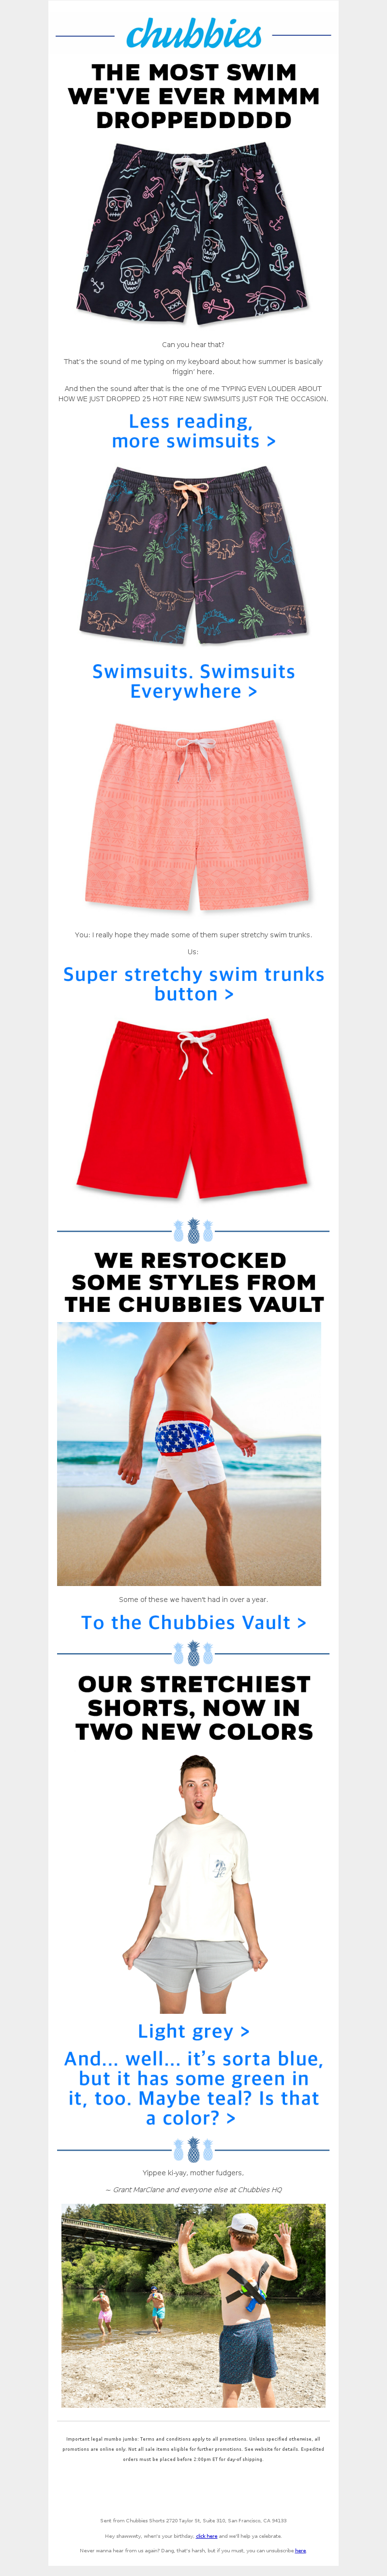 Chubbies - I sincerely regret not opening this email.